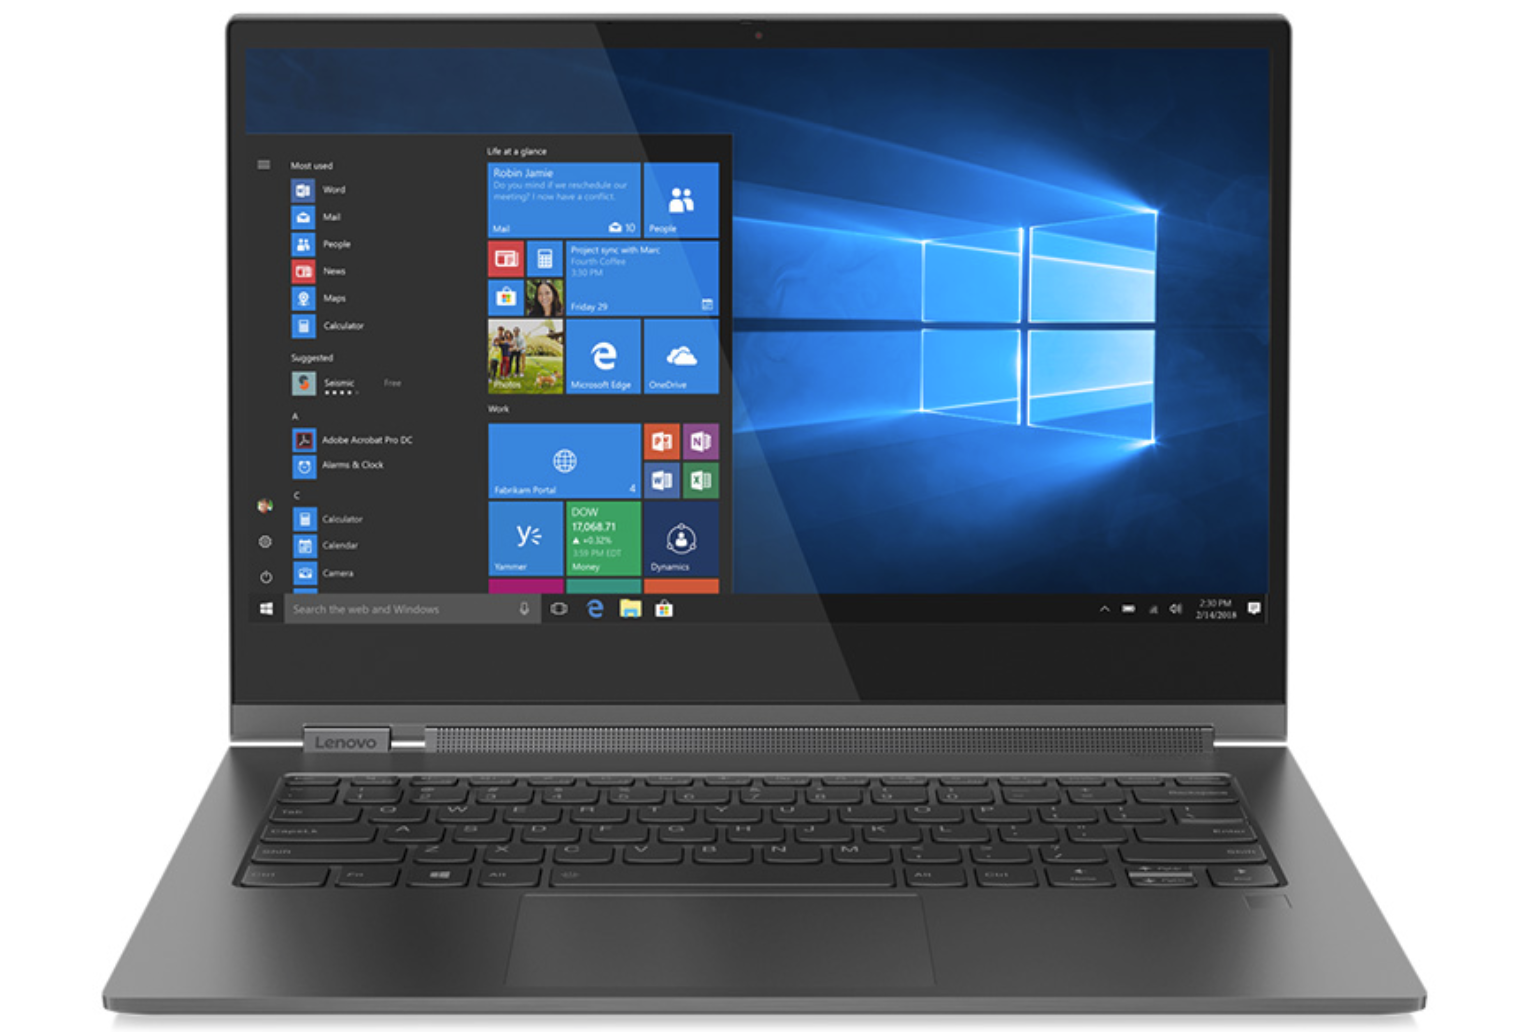 Lenovo Yoga C930-13IKB (i5-8250U, FHD) Convertible Review -  NotebookCheck.net Reviews